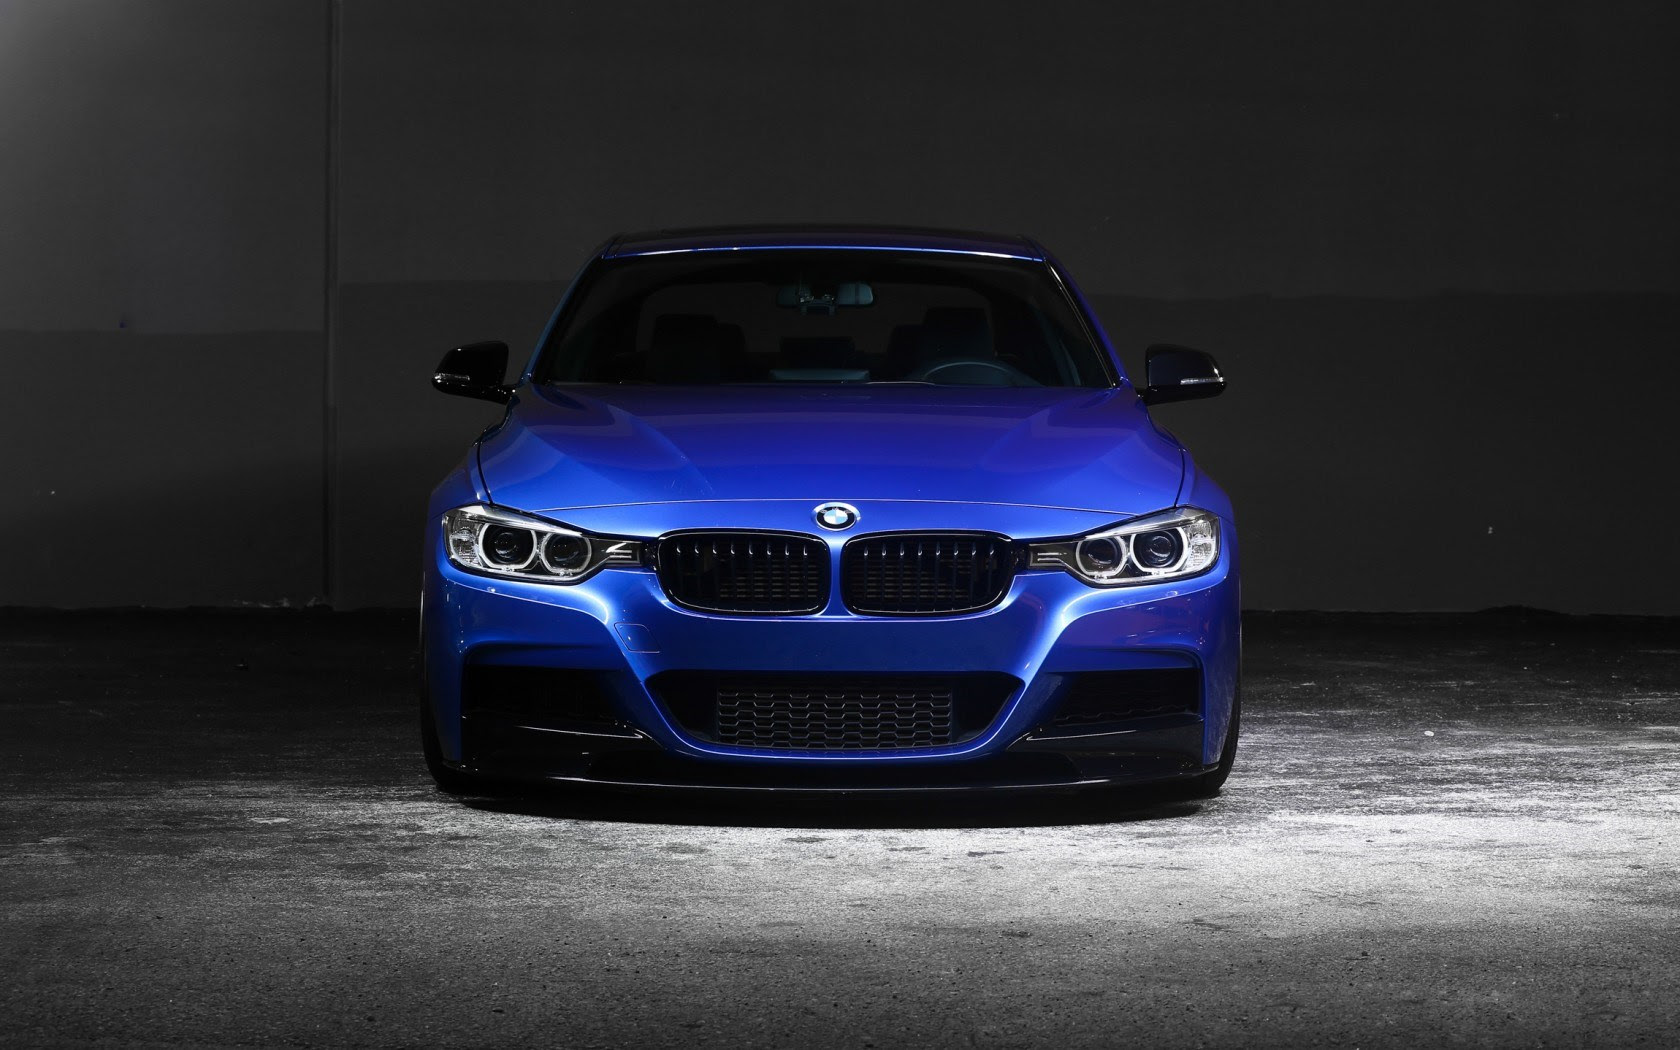 Bmw 335i F30 Car Blue Side Night Hd Wallpaper Pack Wallpapers